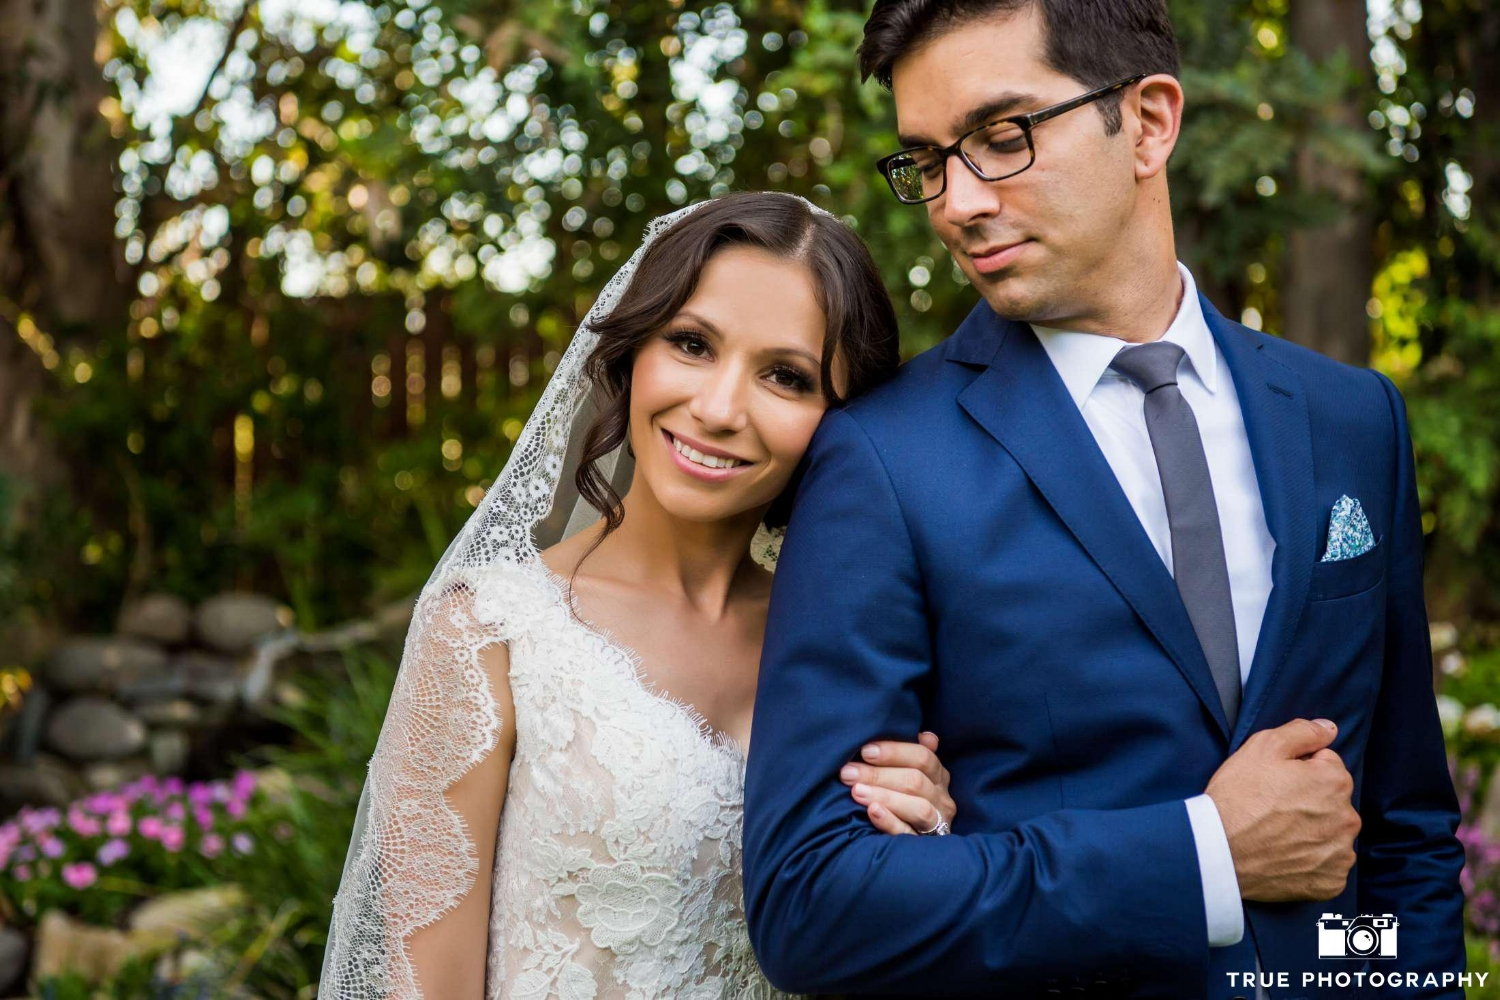 Petite Hispanic Bride in Lace Veil Posing inWedding Photos with Husband. Bridal Hair and Makeup by Vanity Belle in Orange County (Costa Mesa) and San Diego (La Jolla)